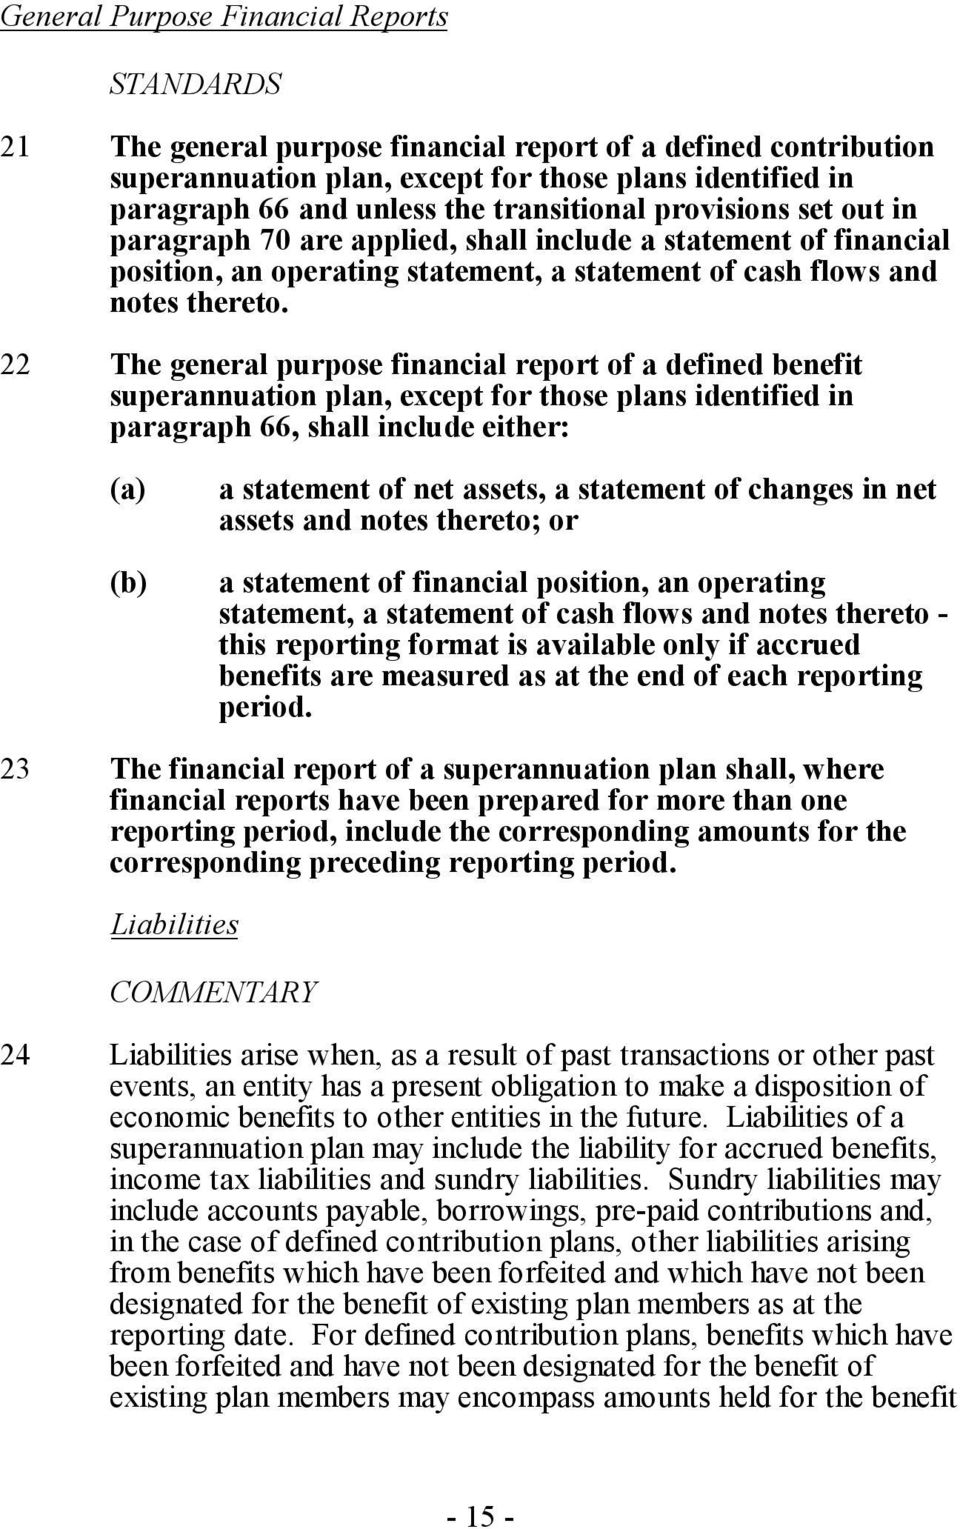 22 The general purpose financial report of a defined benefit superannuation plan, except for those plans identified in paragraph 66, shall include either: (a) (b) a statement of net assets, a